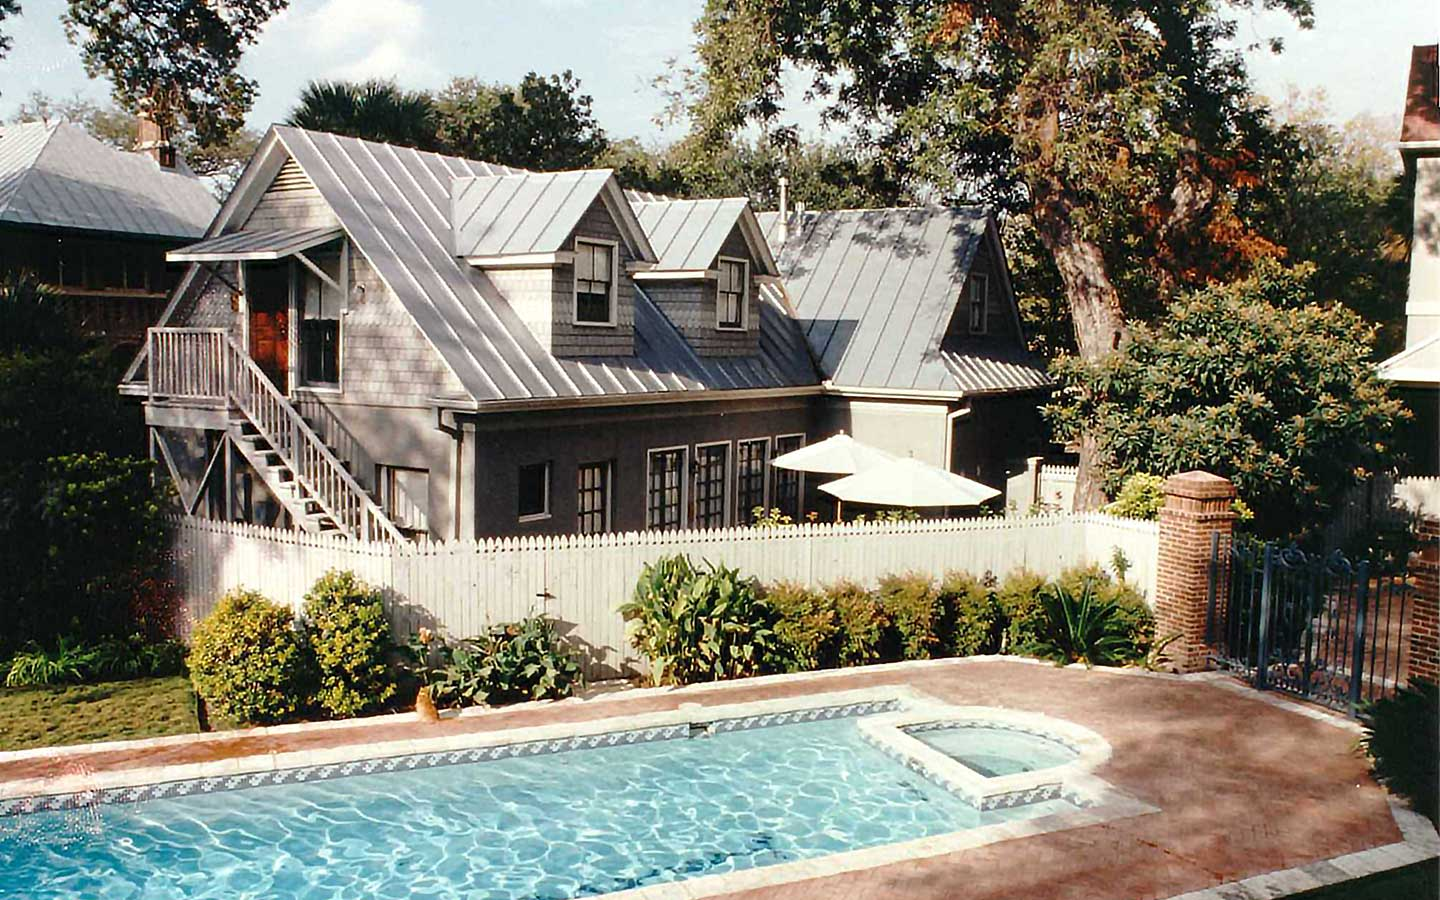 Bed and breakfast in san antonio tx romance on the riverwalk for 1 bedroom house for rent san antonio